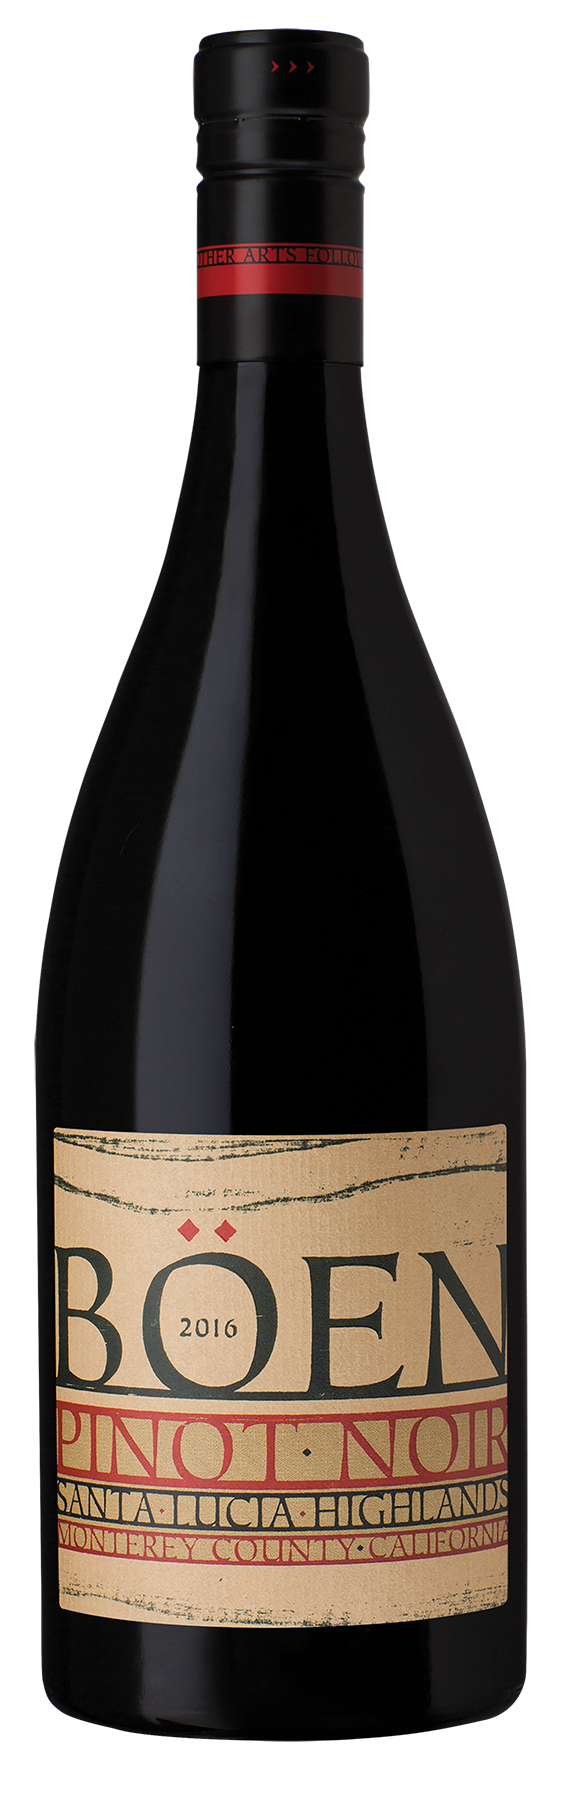 2016 BÖEN Santa Lucia Highlands Pinot Noir bottle shot